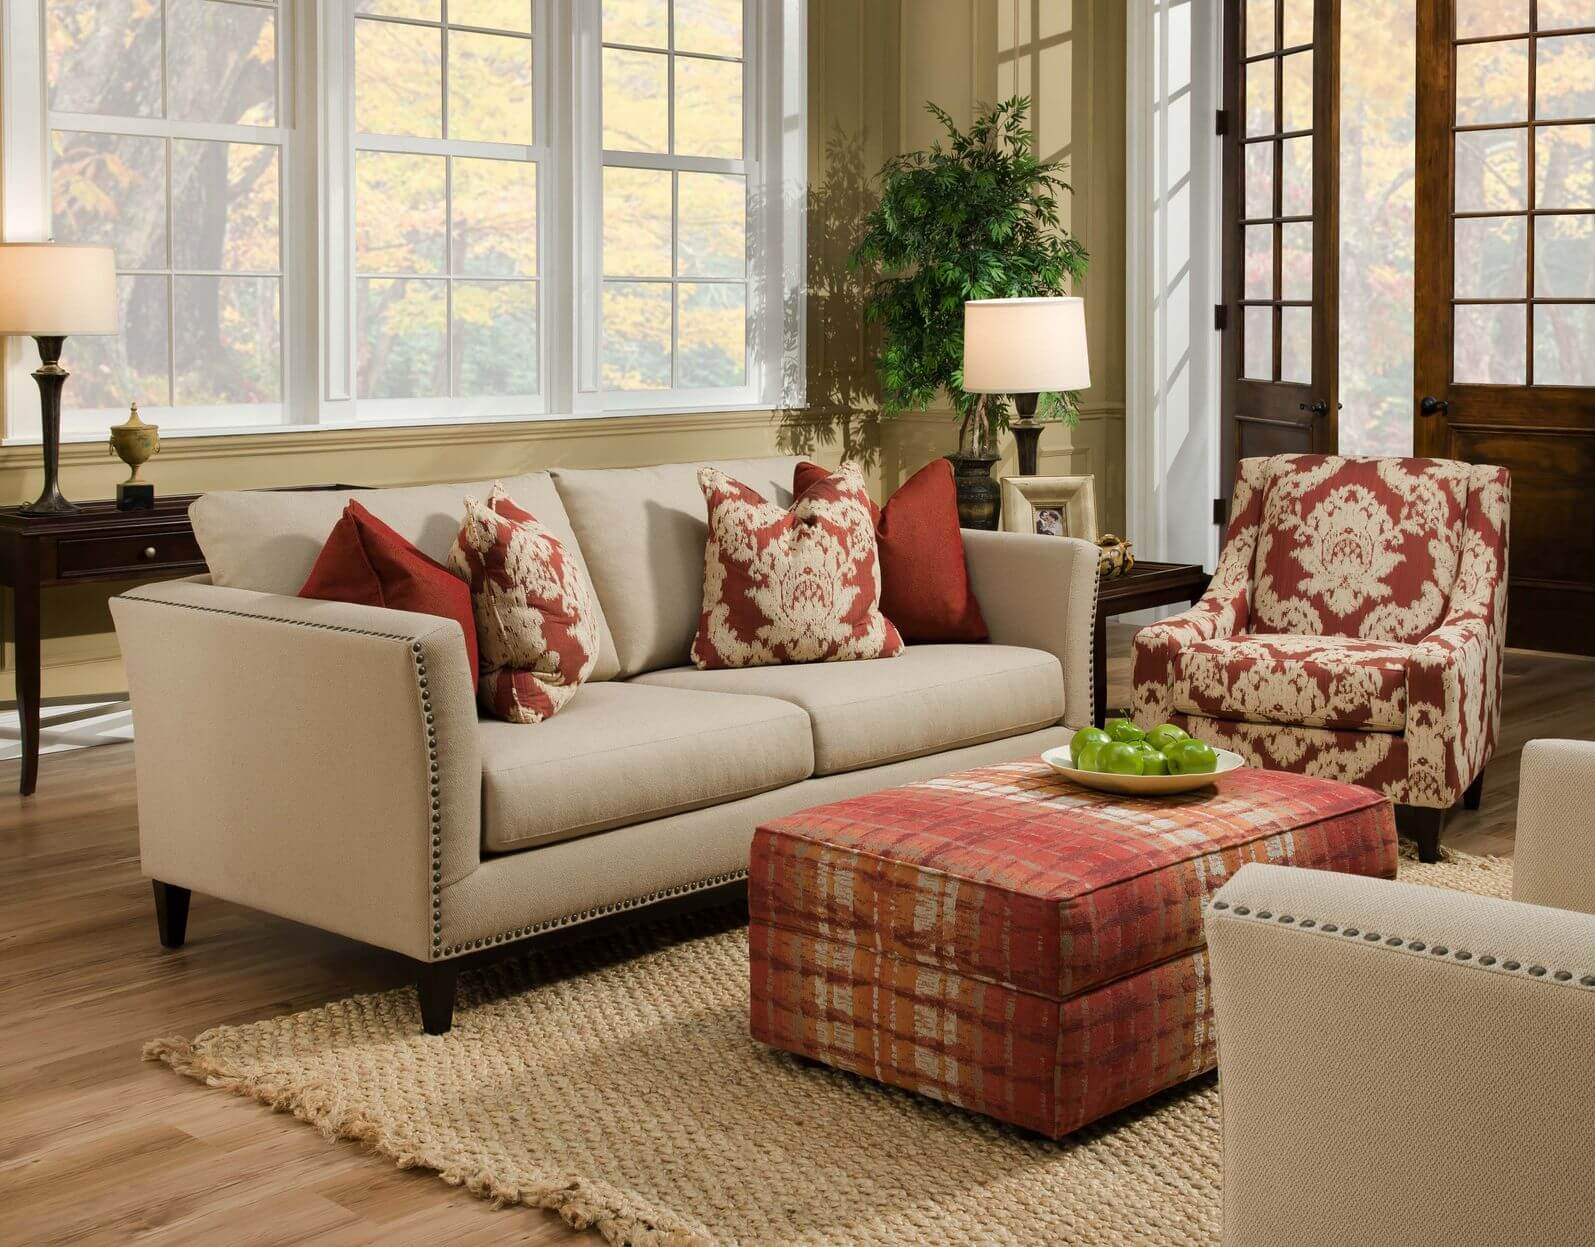 cushion ideas for light brown sofa sure fit scroll 1 piece slipcover 50 beautiful living rooms with ottoman coffee tables beige twin couches face each other over natural hardwood flooring and tan rug in this